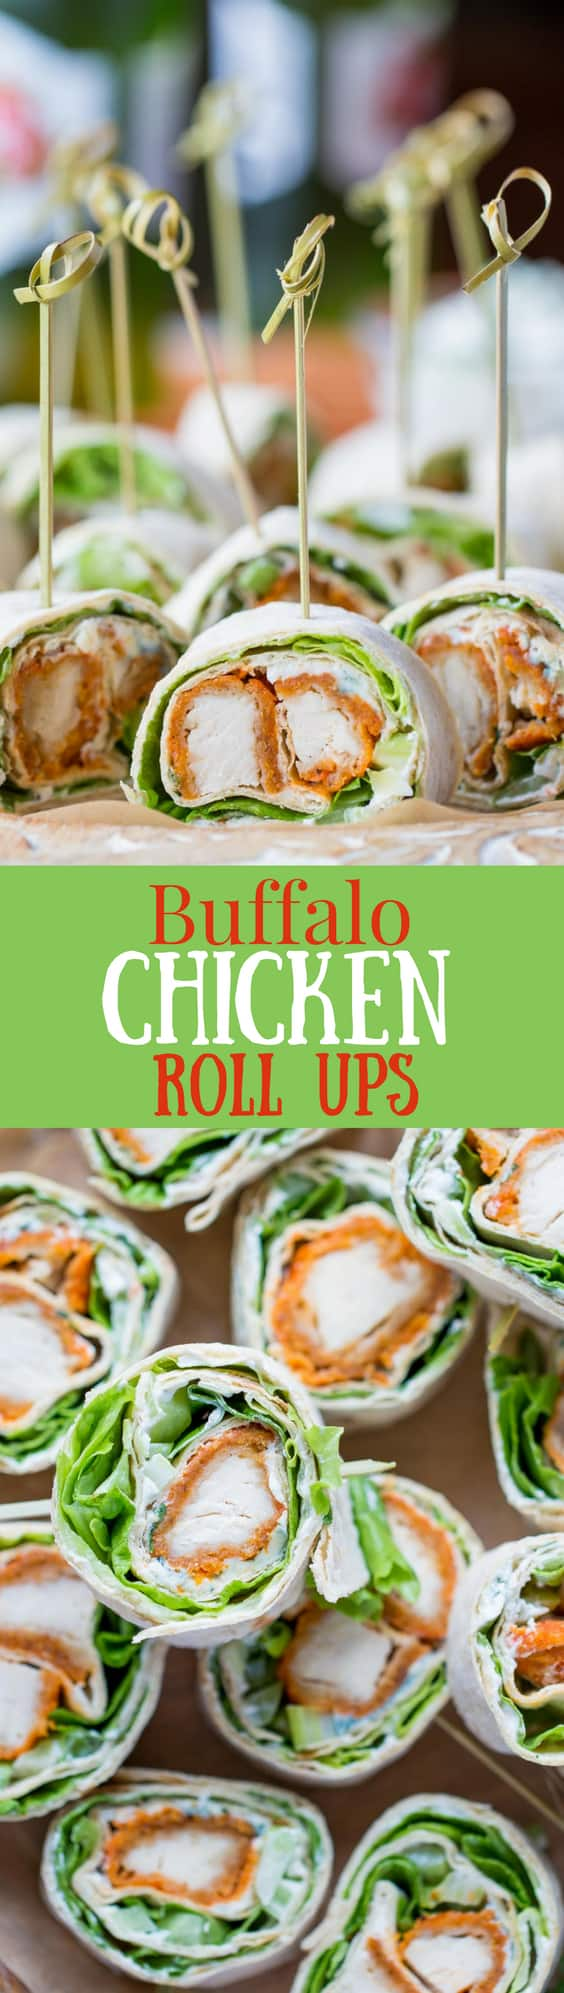 Buffalo Chicken Roll Up Appetizers ~ made with all-natural frozen chicken tenders tossed in hot sauce, then rolled up with a homemade blue cheese dip, celery, and crisp lettuce. blue cheese | buffalo chicken | appetizer | roll ups | wraps | www.savingdessert.com